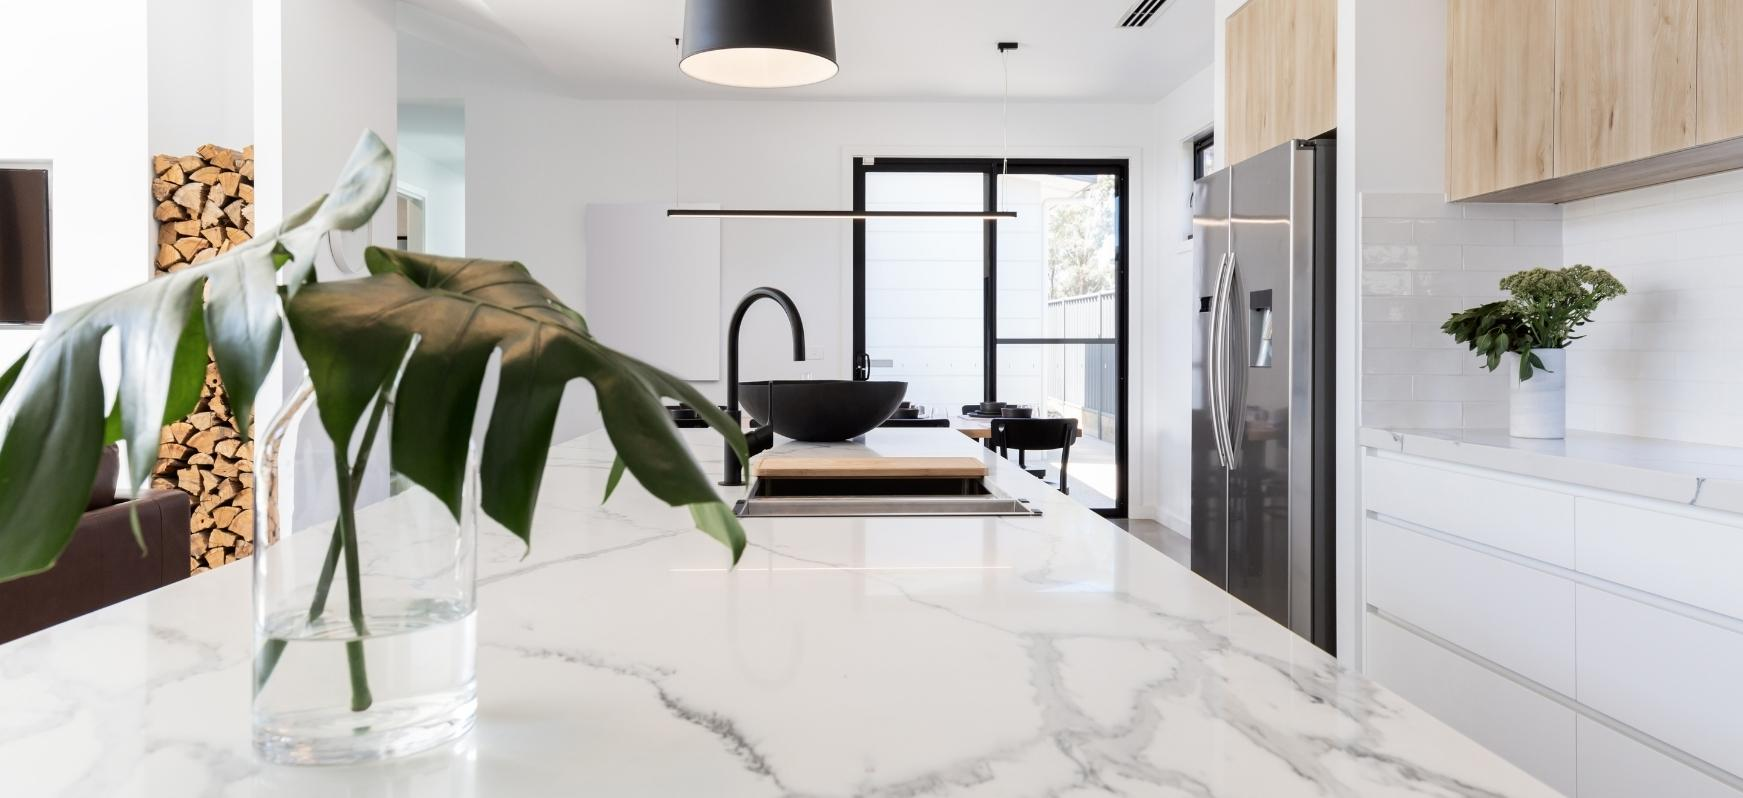 White Marble Kitchen Countertops with Marble Island and Matte Black Stainless Steel Faucet Natural Stone Countertops